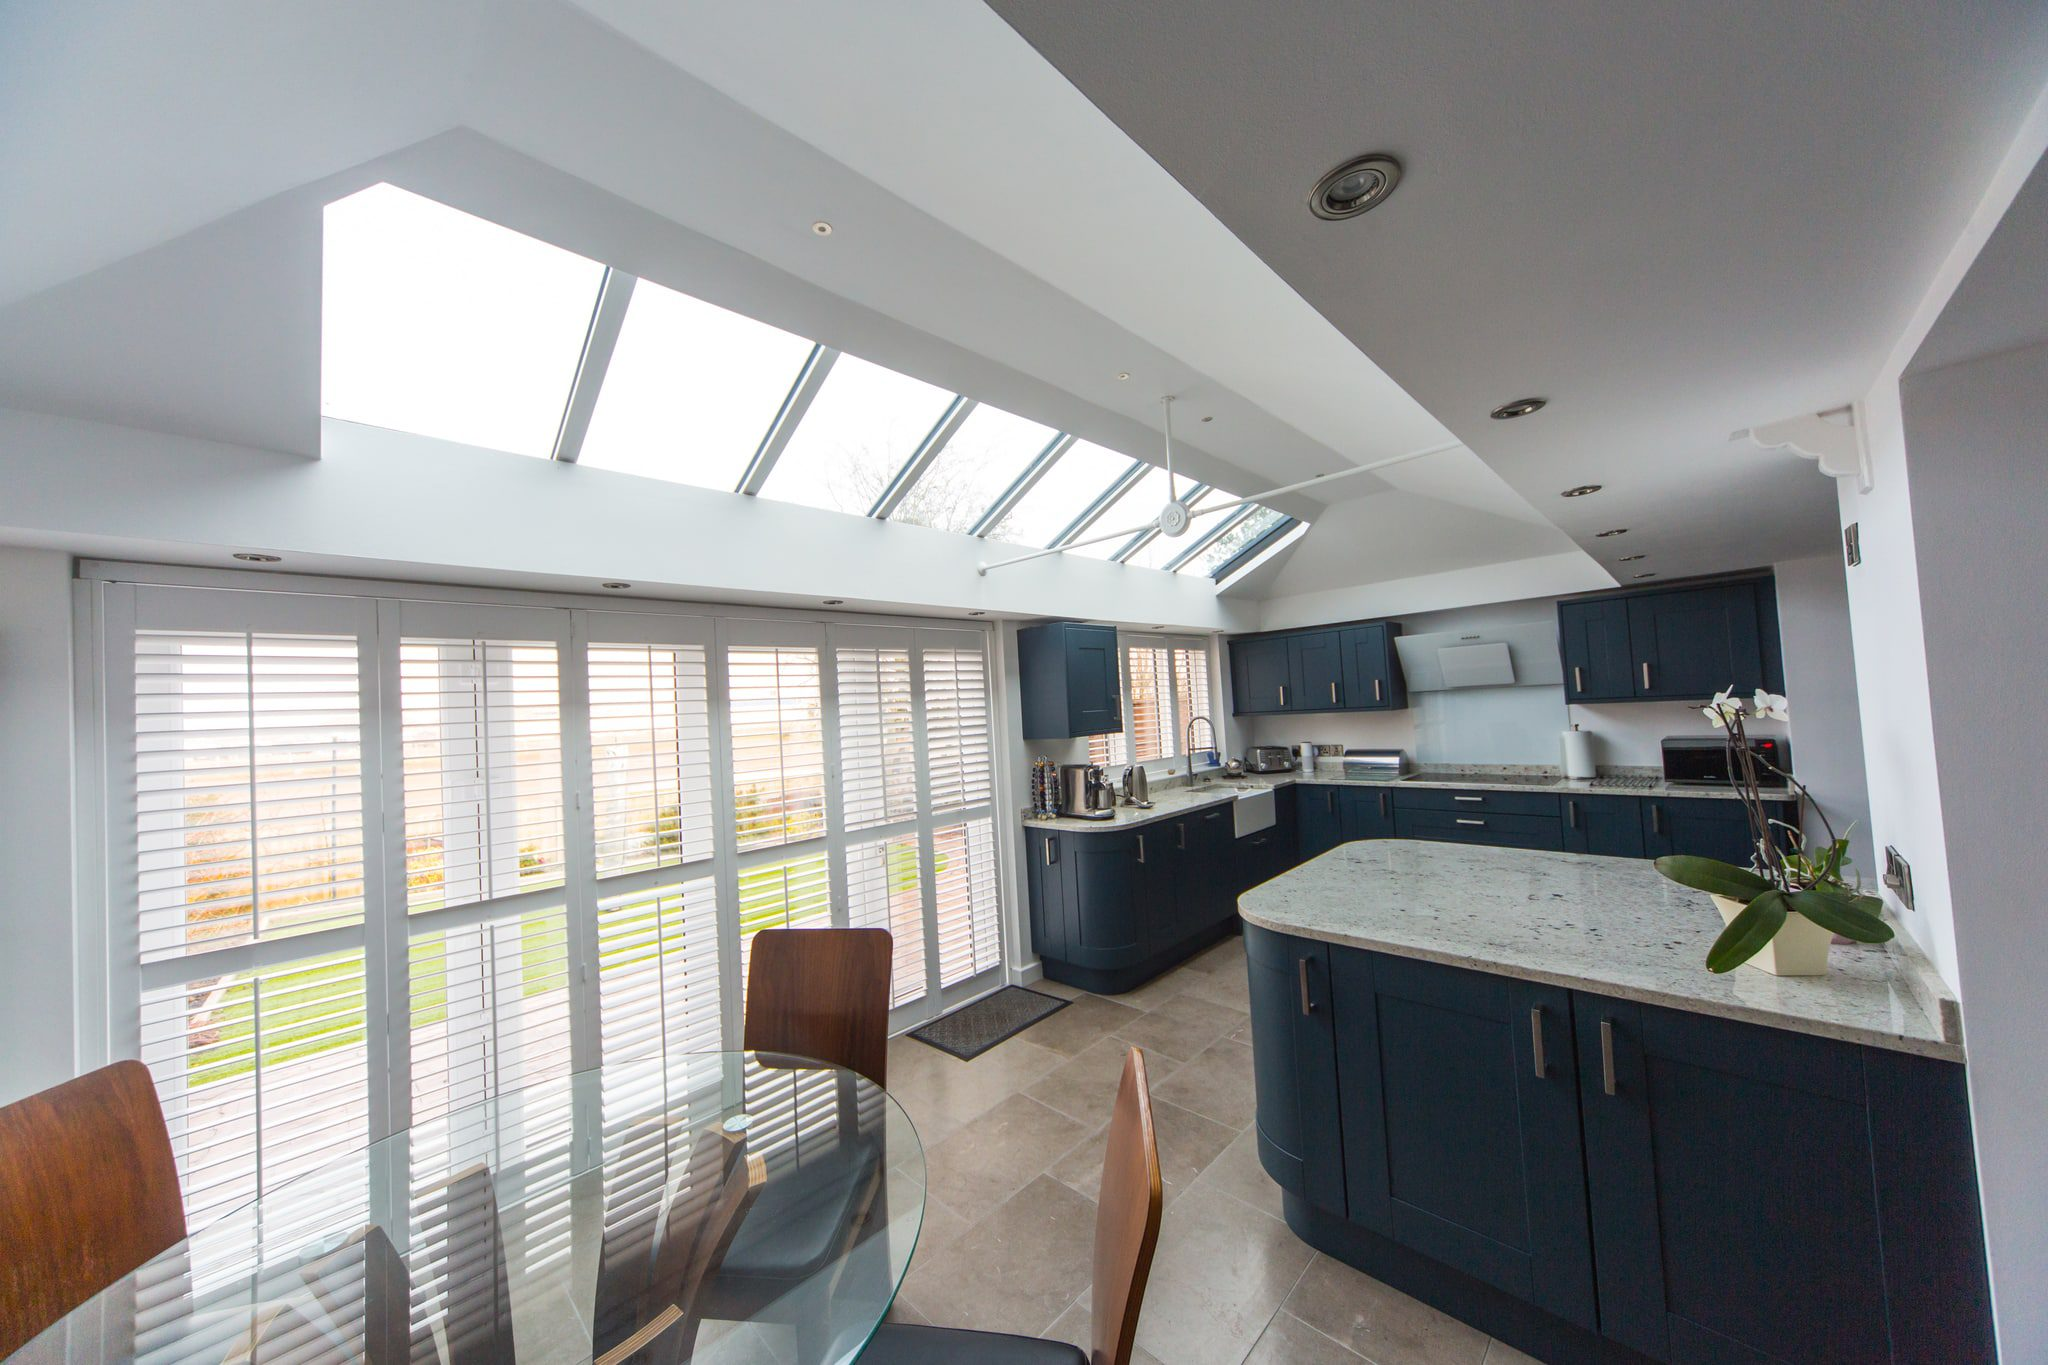 LivinROOF internal view extension dining area